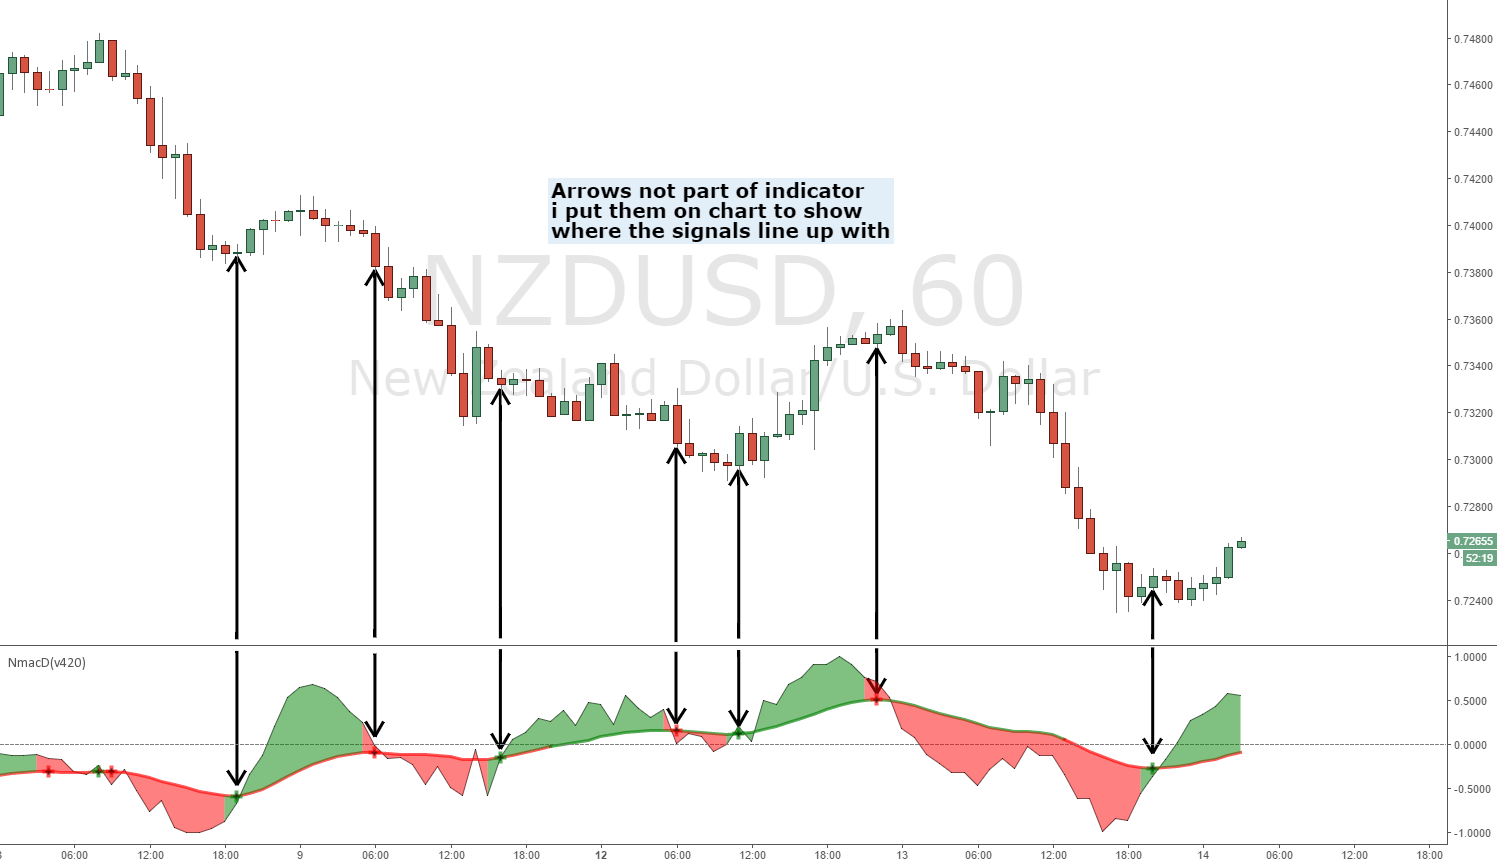 Normalized MACD (v420) — Indicator by SeaSide420 — TradingView